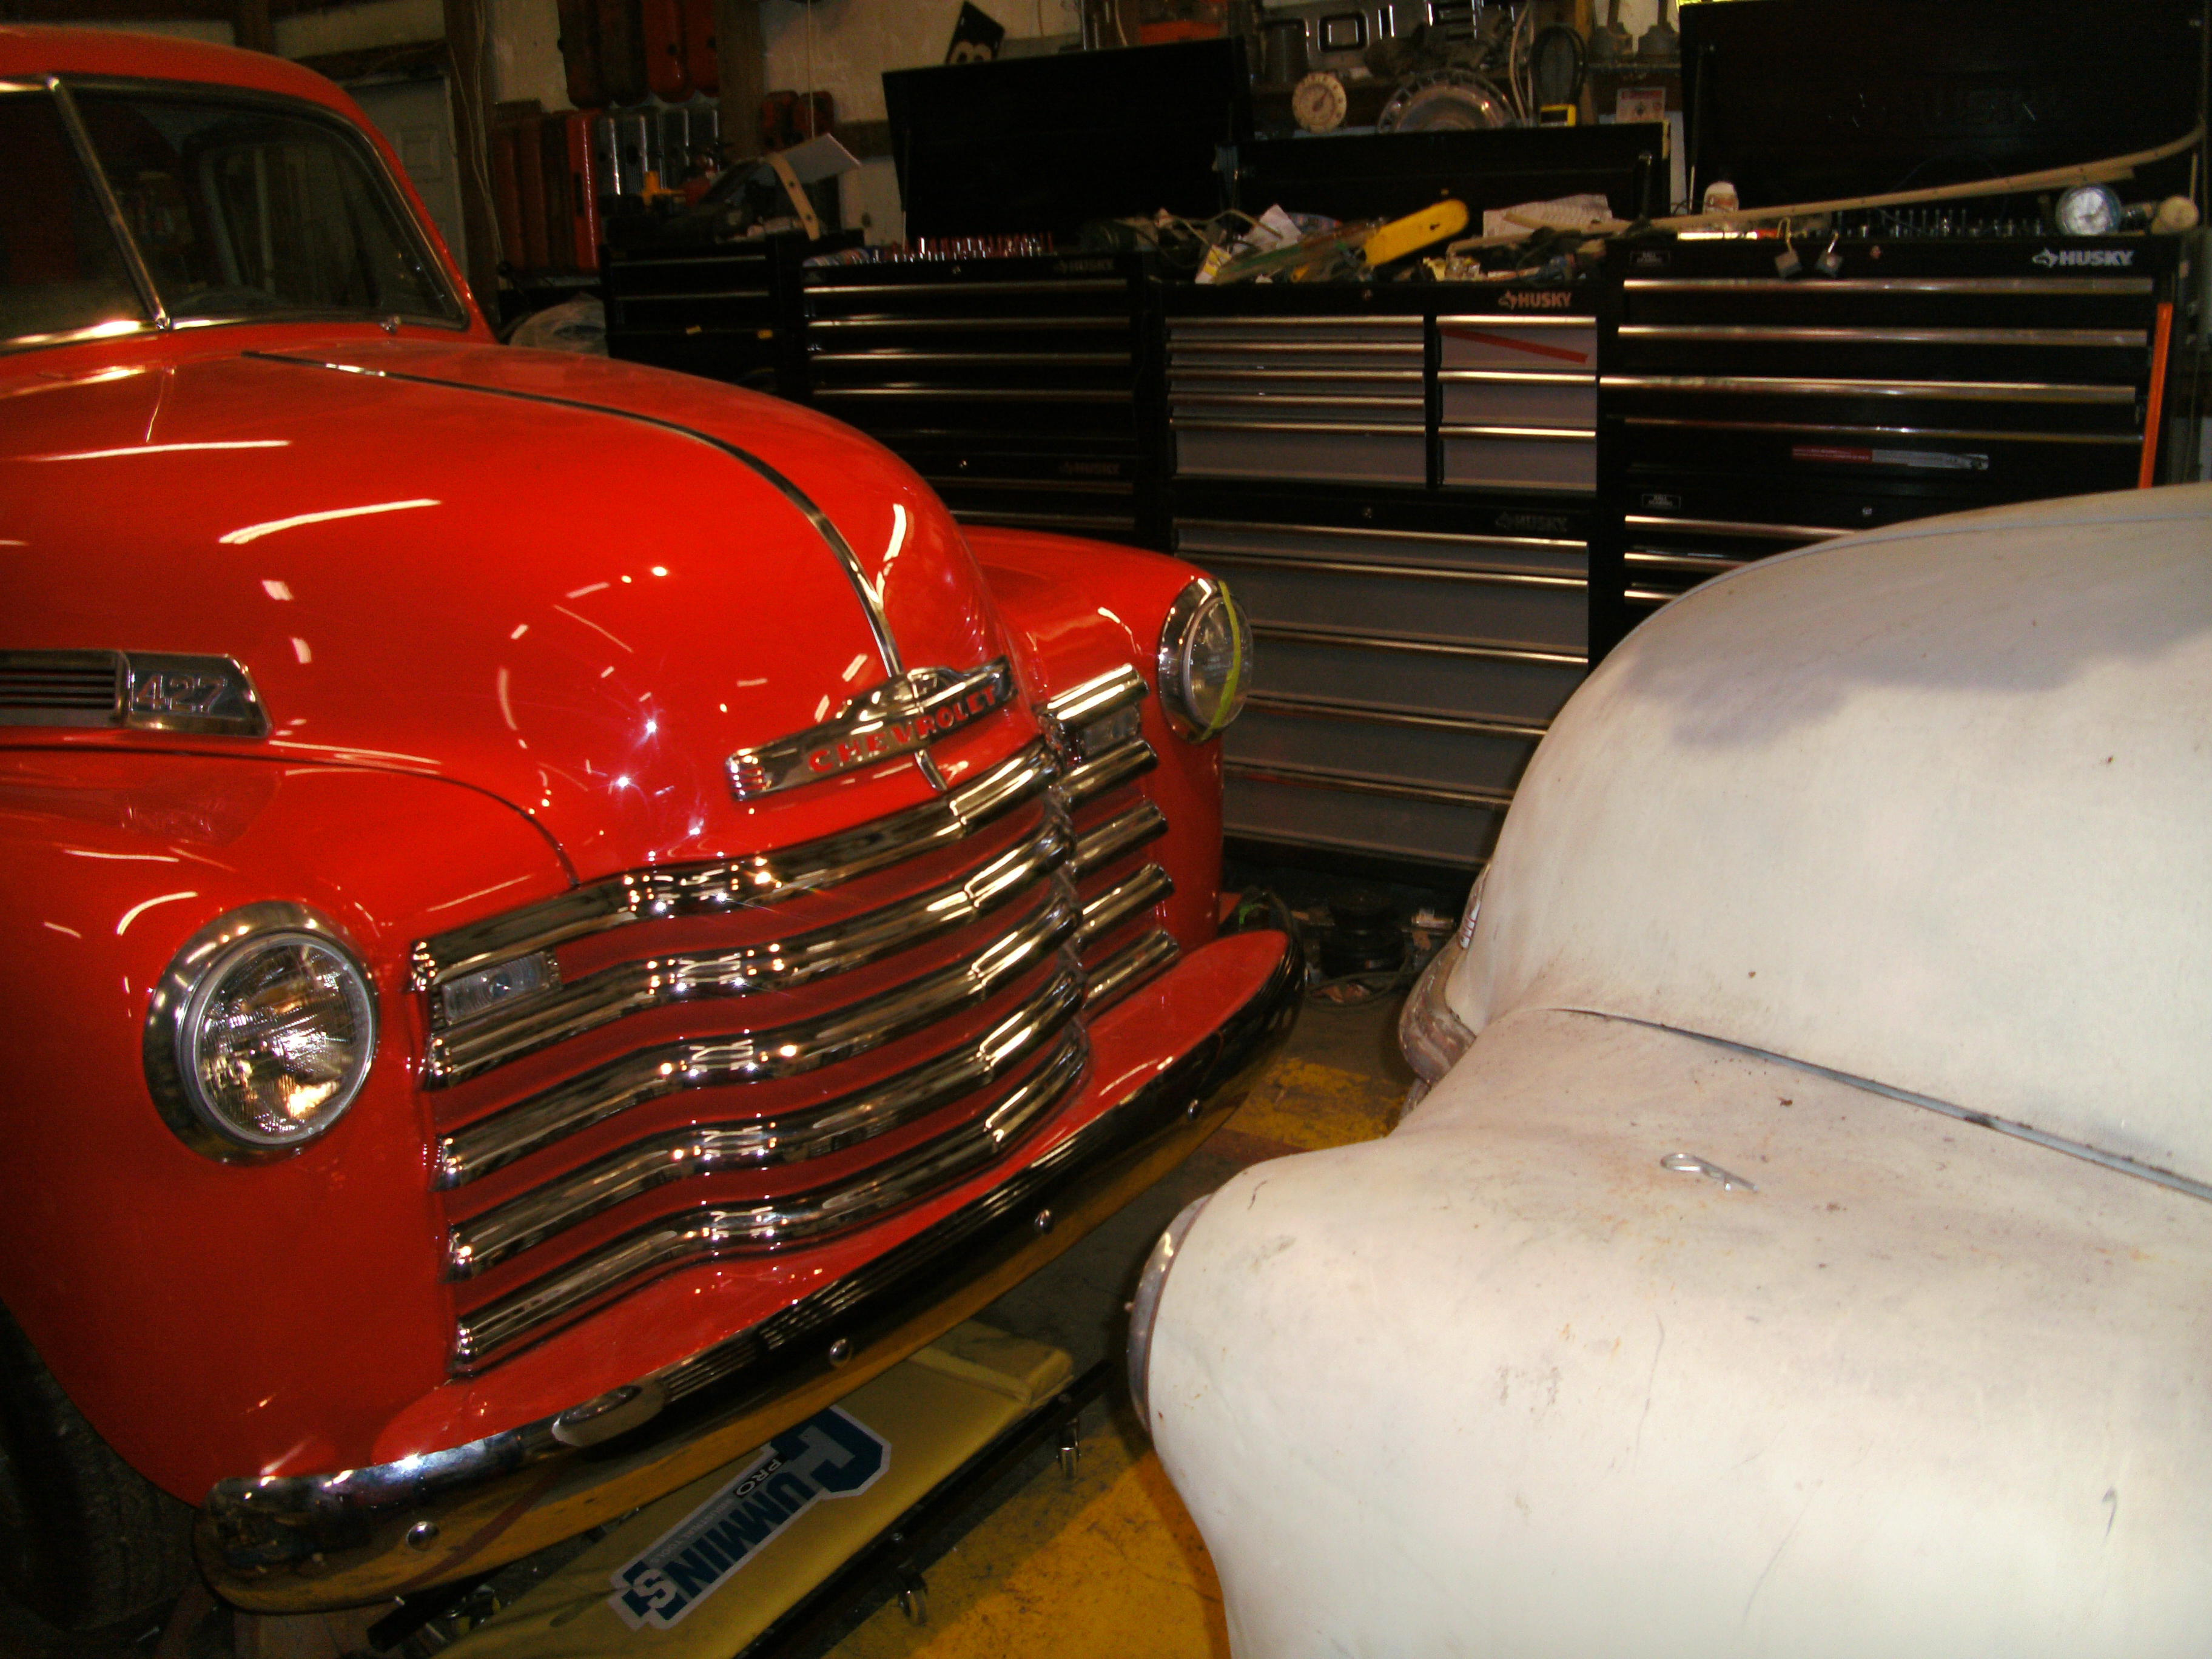 Click image for larger version  Name:51 & 53 CHEVY PU 003.jpg Views:114 Size:914.1 KB ID:167034